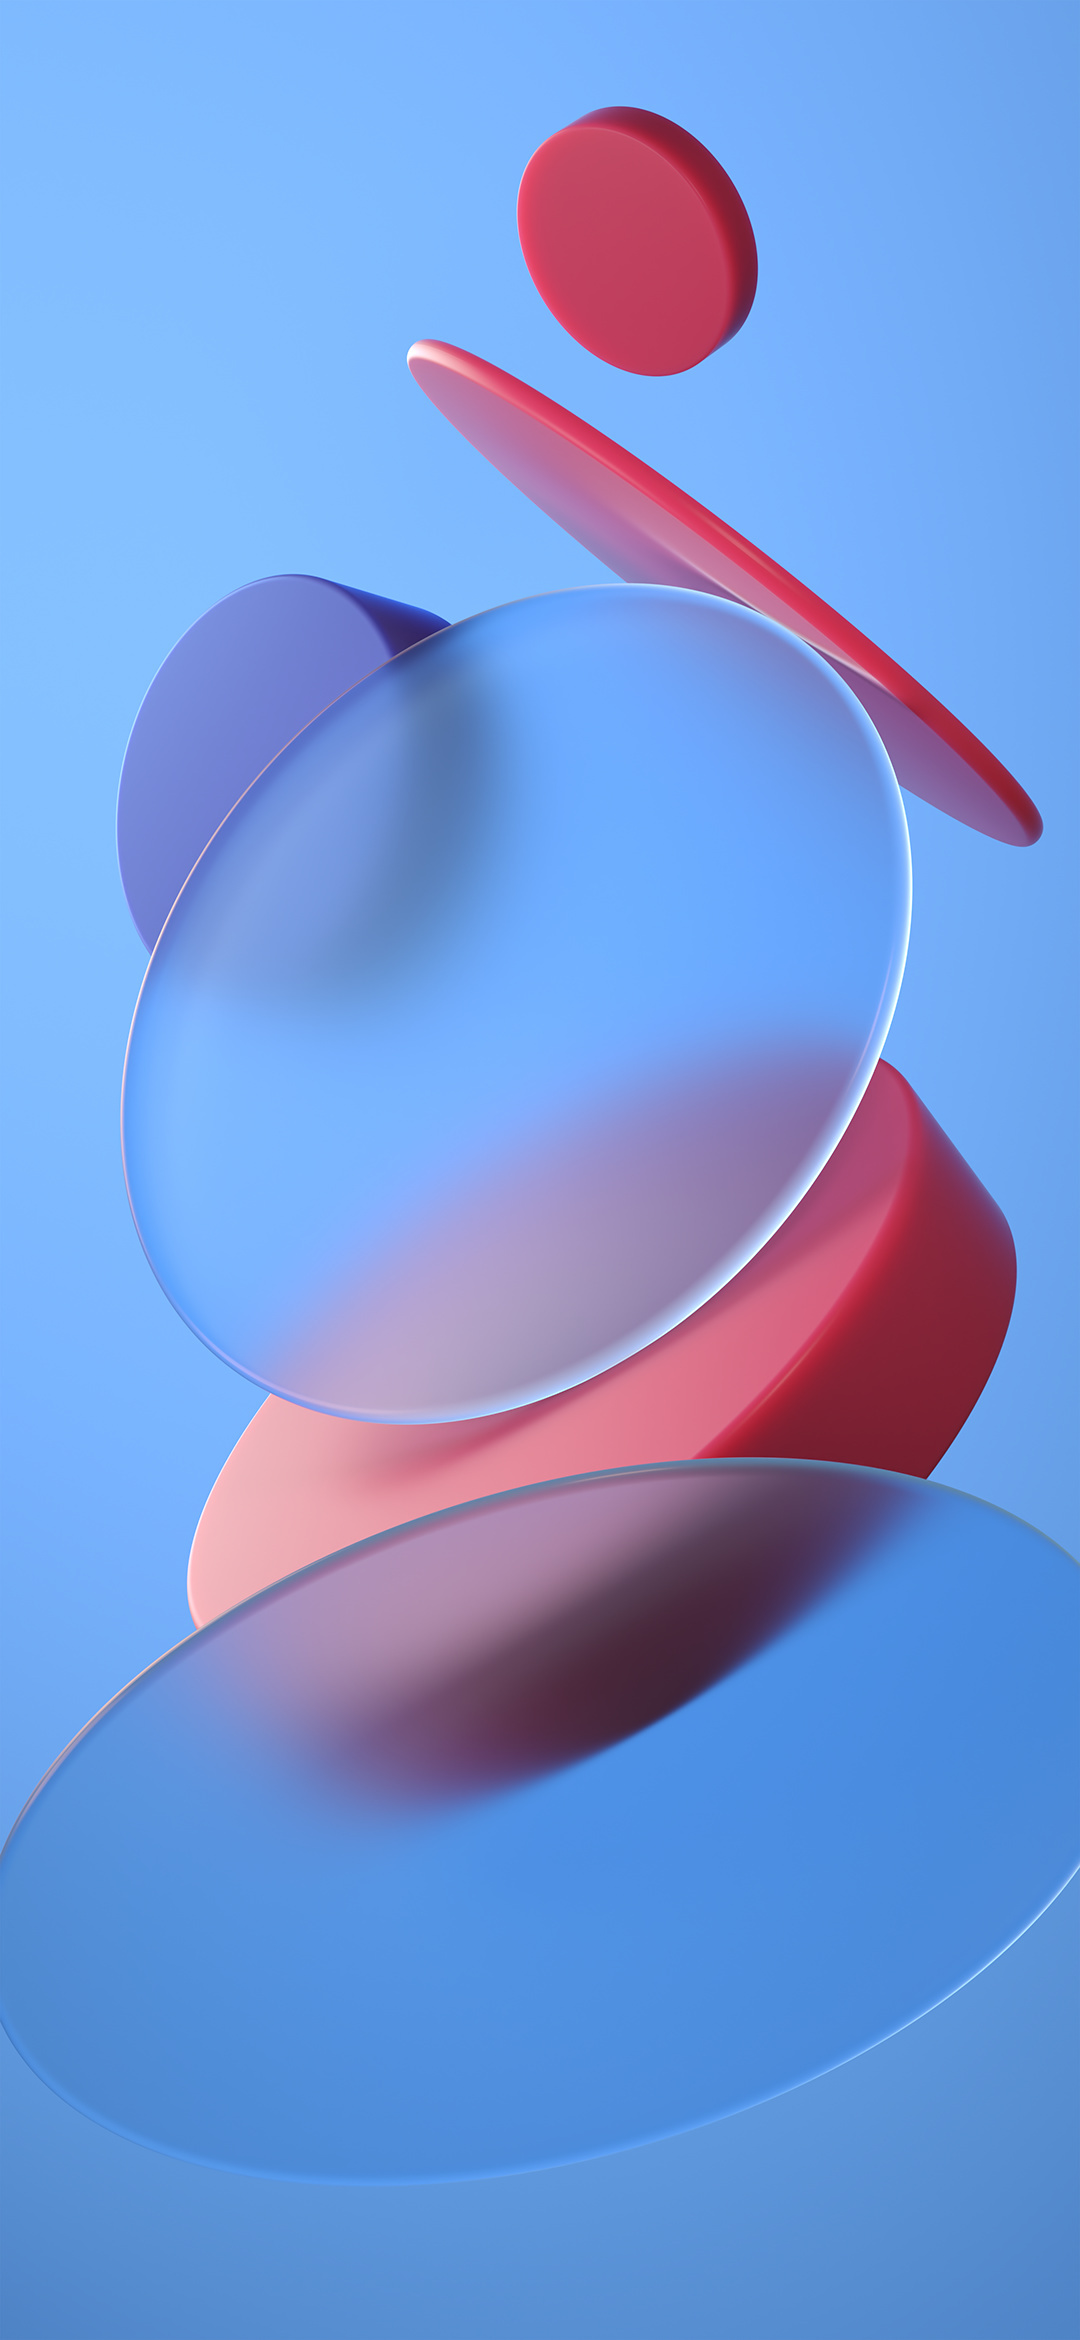 miui 12 stock wallpaper